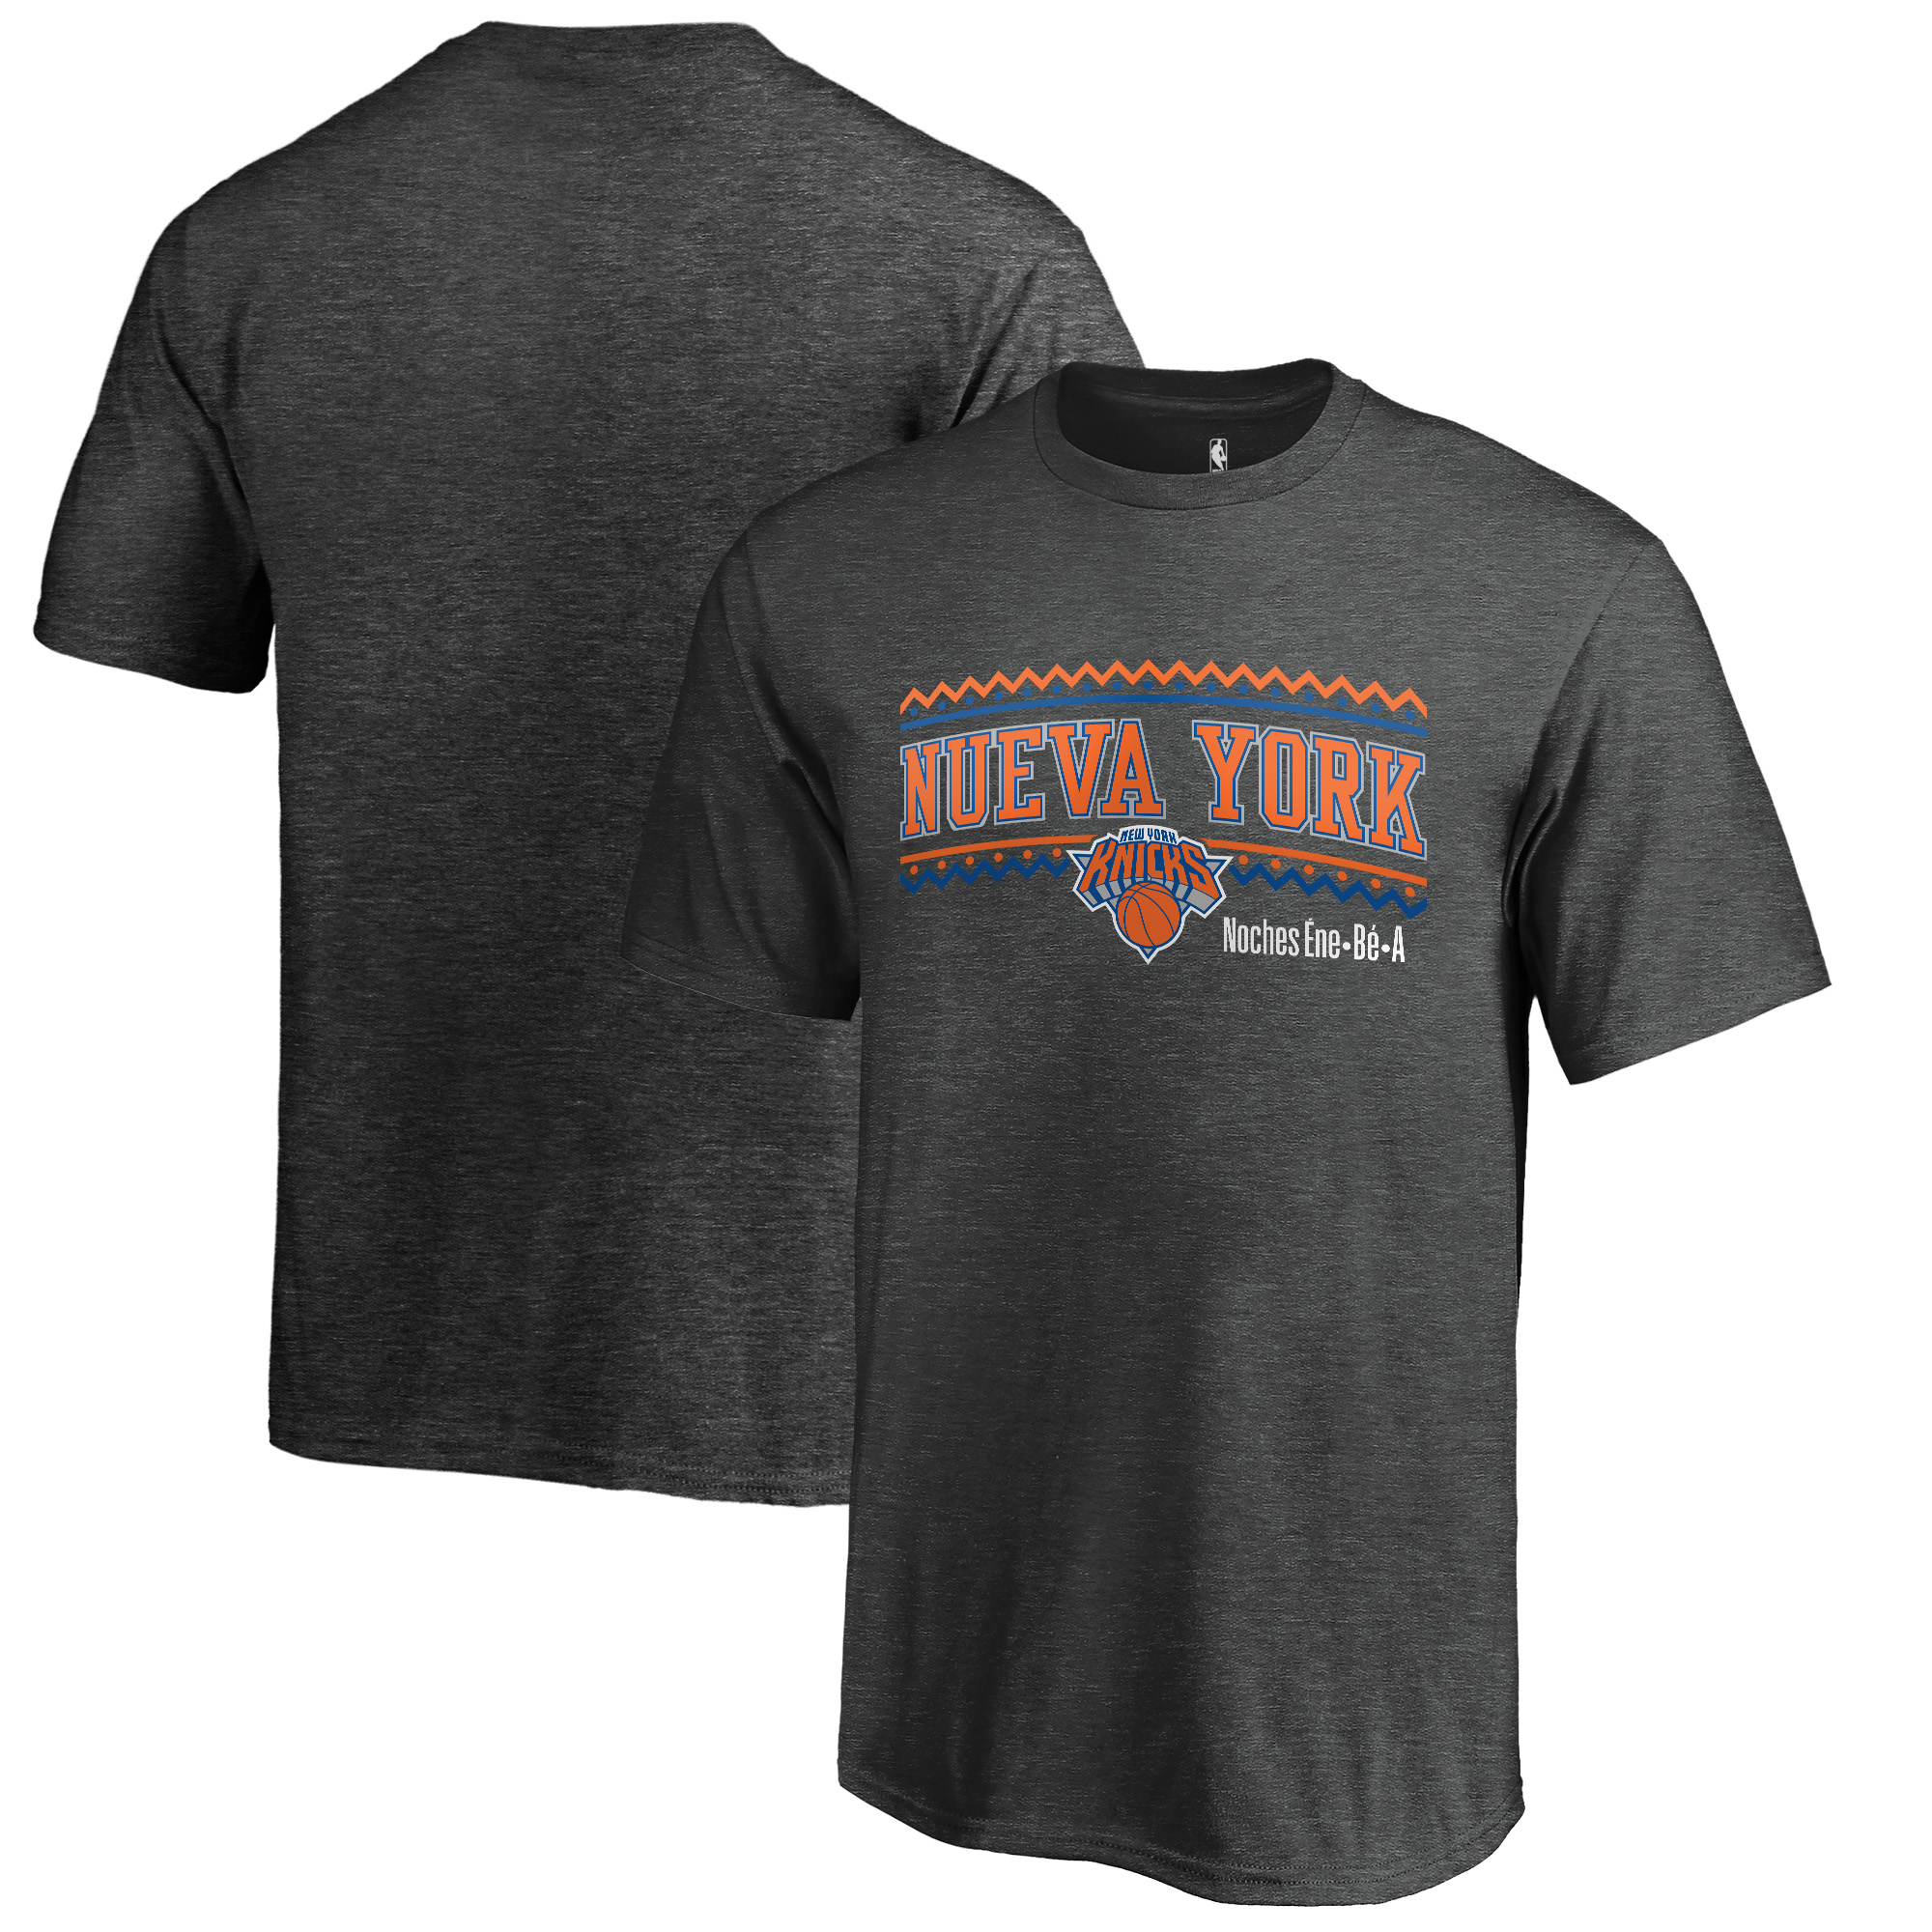 New York Knicks Fanatics Branded Youth Noches Ene-Be-A T-Shirt - Heather Gray